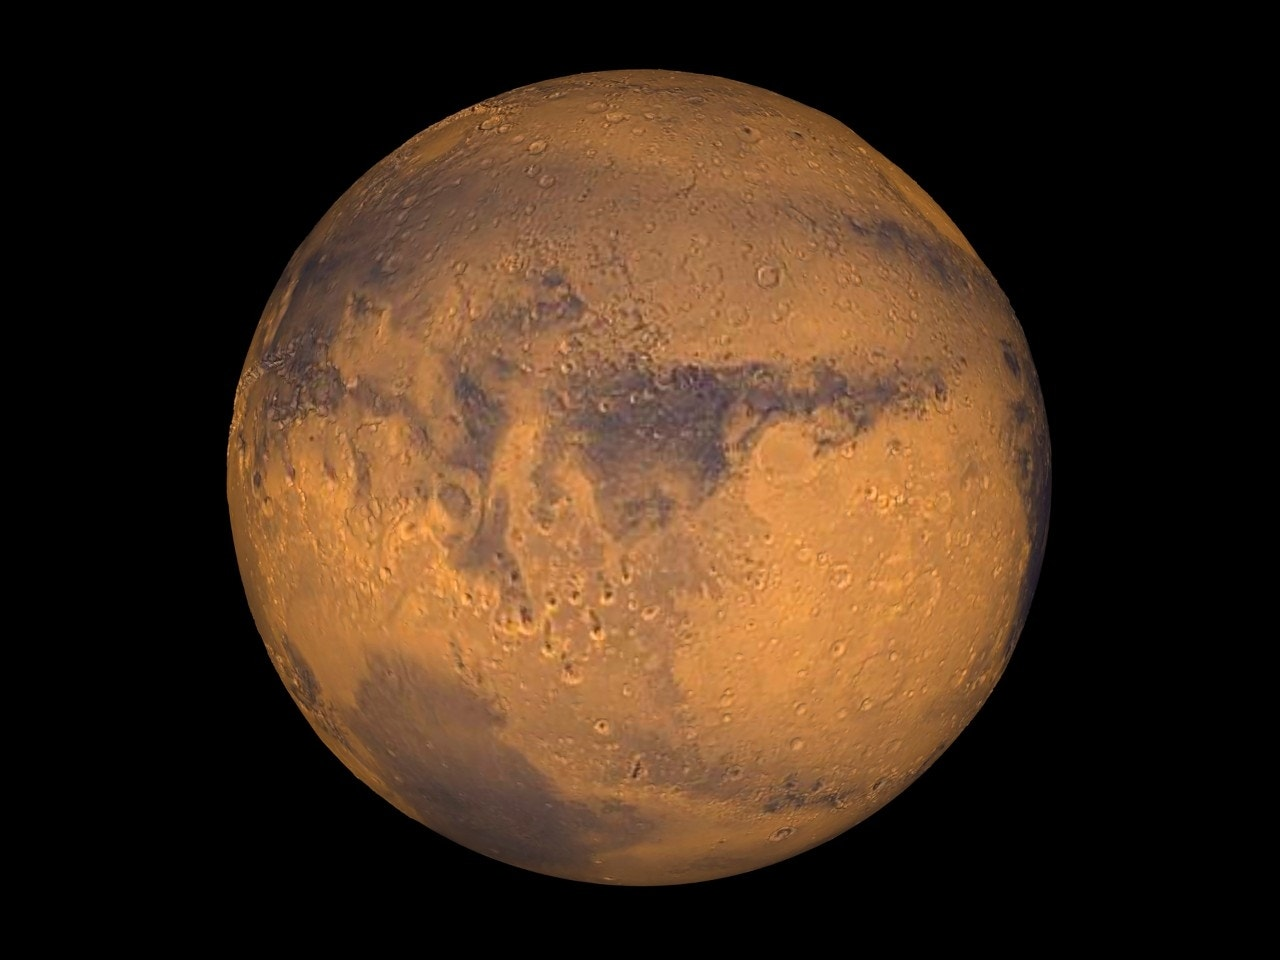 Life existed on Mars, shocking discovery suggests